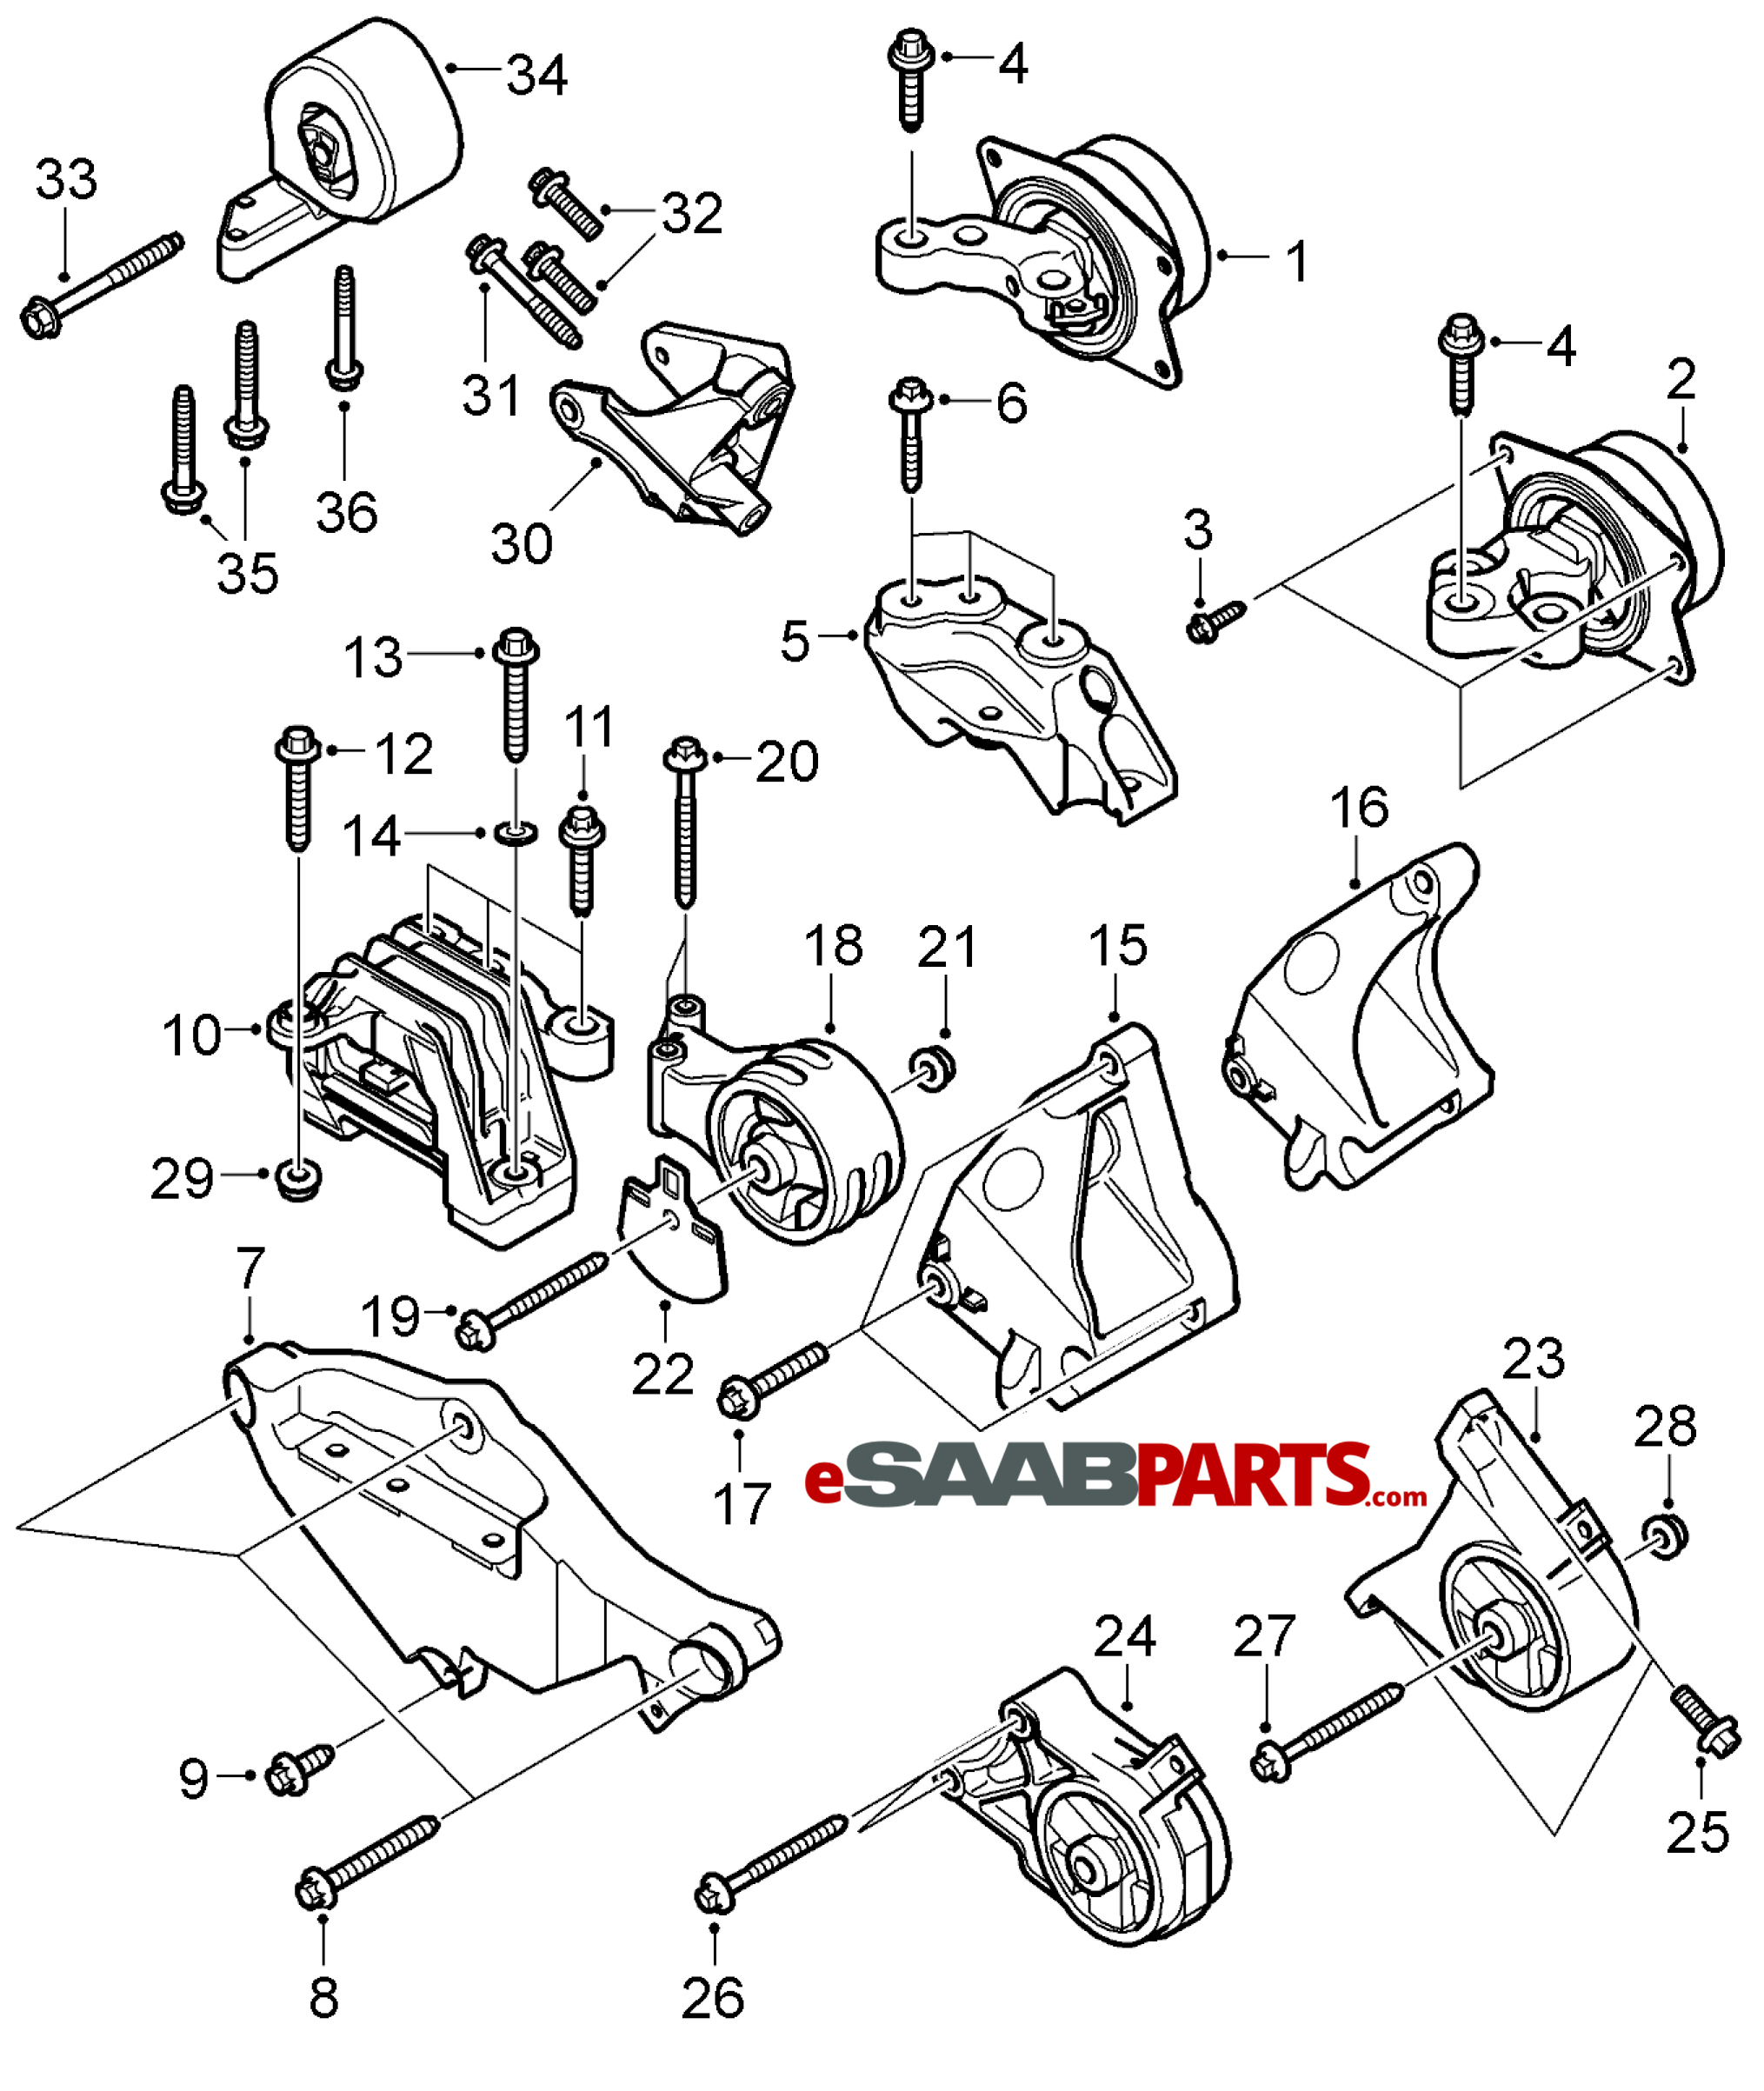 13191542 saab engine mount lh hydro bushing automatic rh esaabparts com 2003 Saab 9 3 Timing Diagram 1993 Saab 900 Engine Diagram